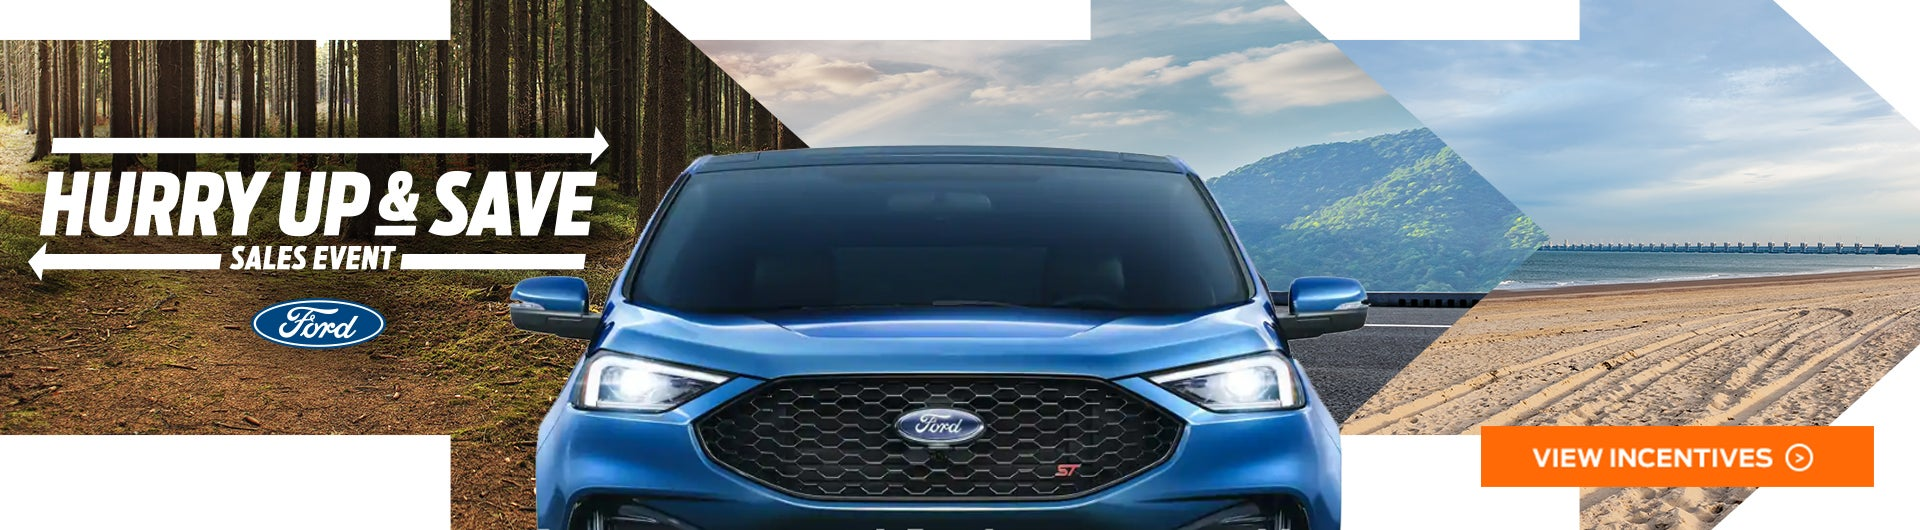 Joe Cooper Ford Midwest City >> Joe Cooper Ford Midwest City Top New Car Release Date